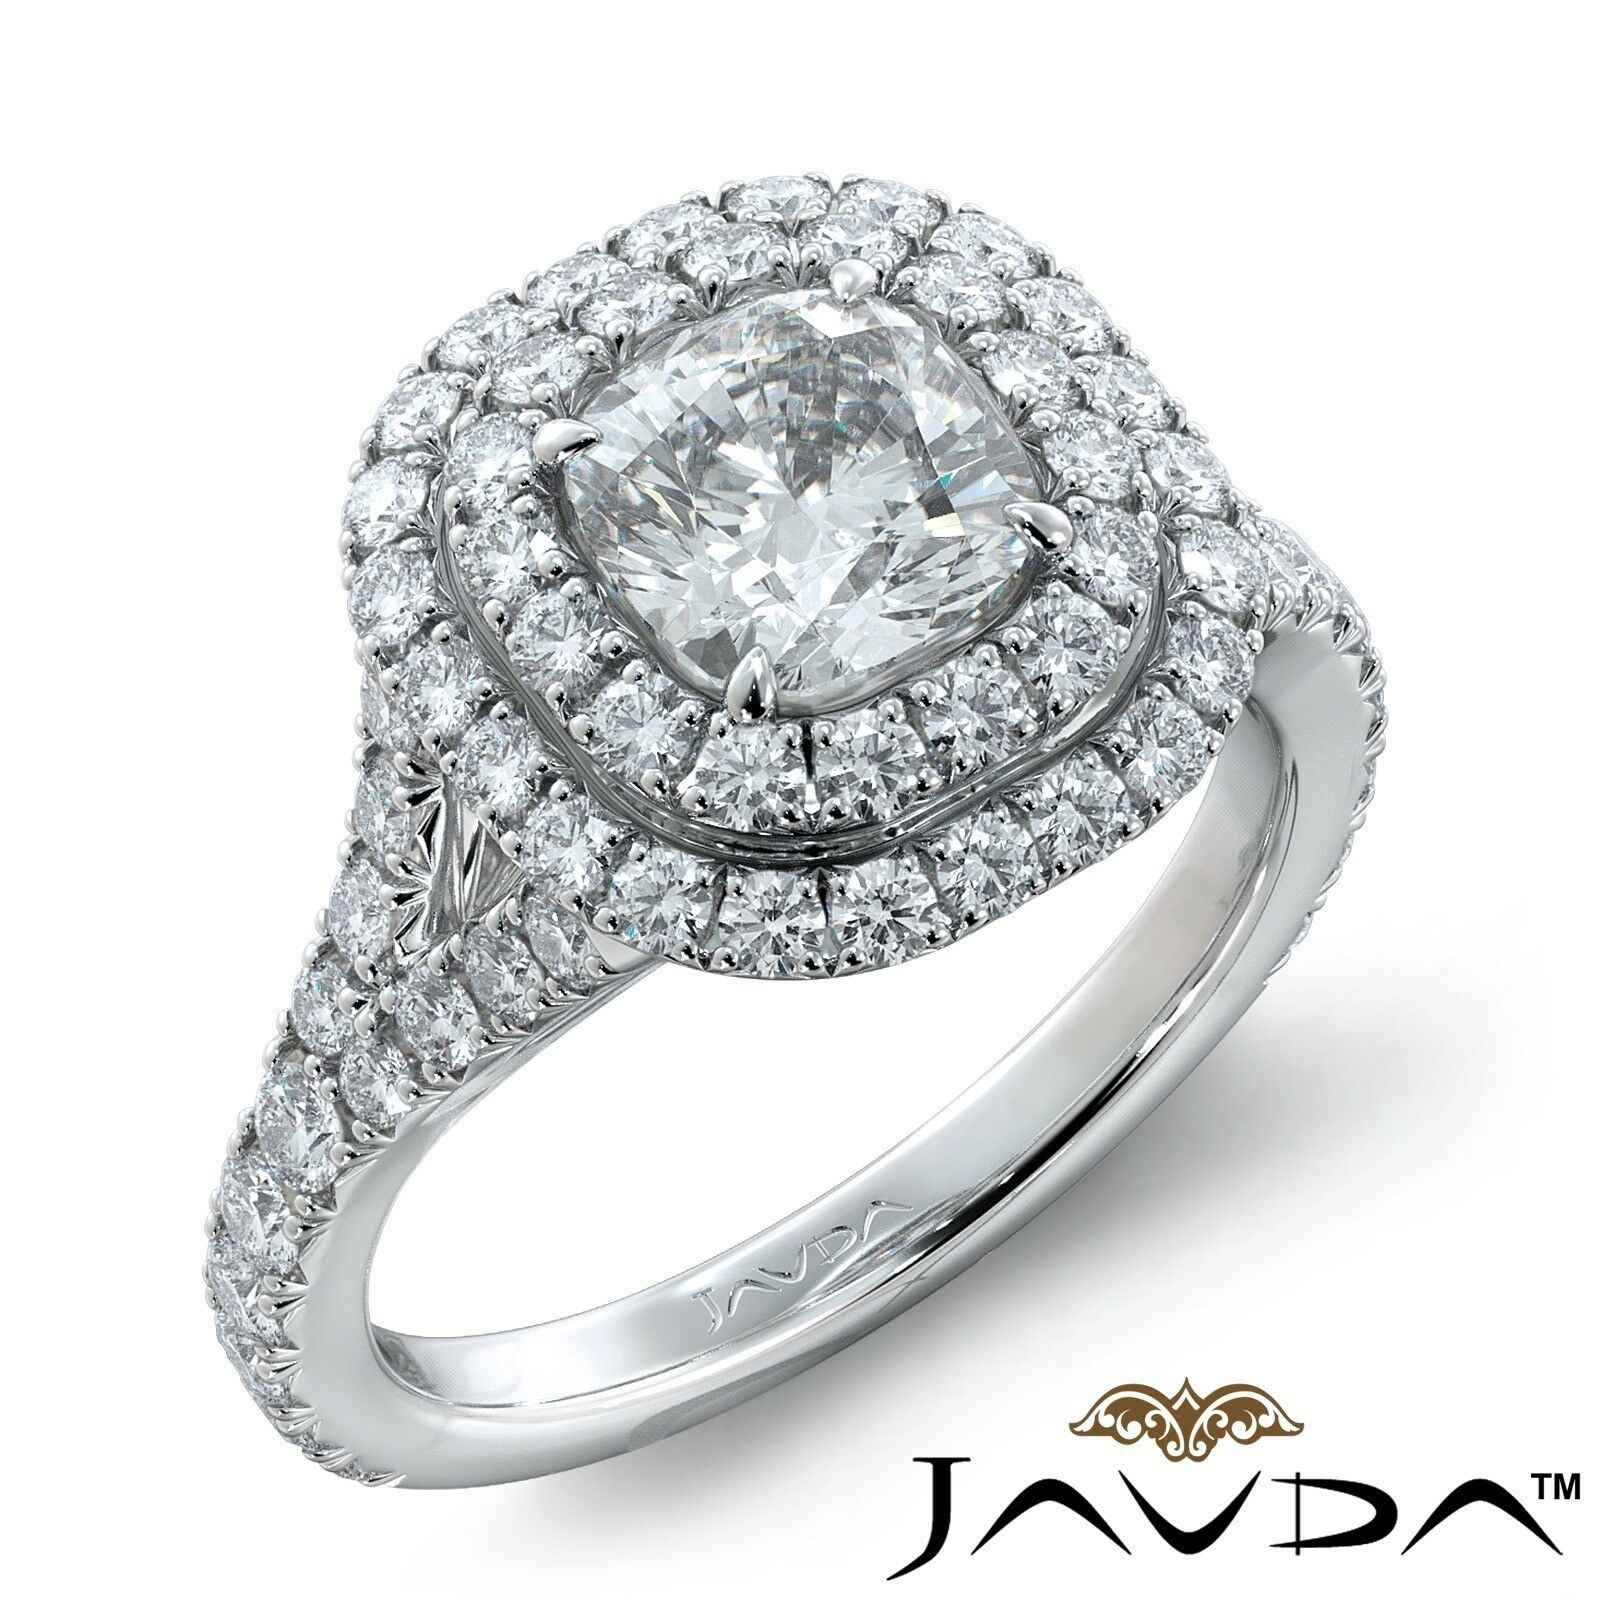 2.41ctw French V Cut Double Halo Cushion Diamond Engagement Ring GIA G-VVS2 Gold